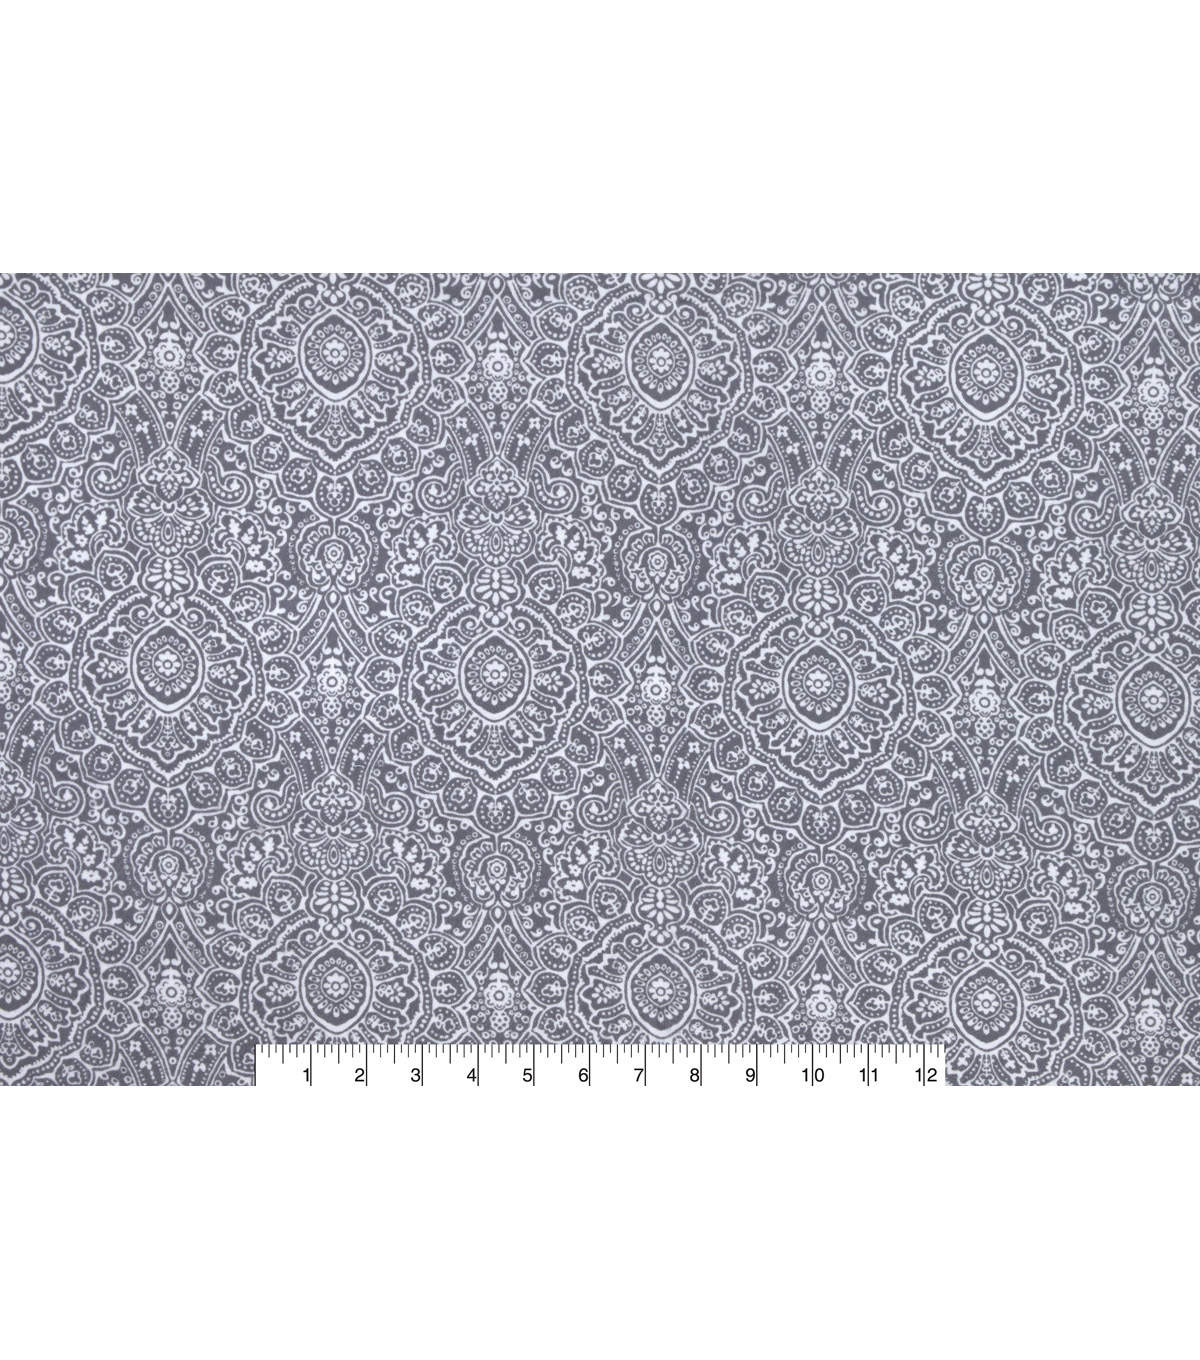 Snuggle Flannel Fabric 42\u0022-Grey Ink Stamp Print